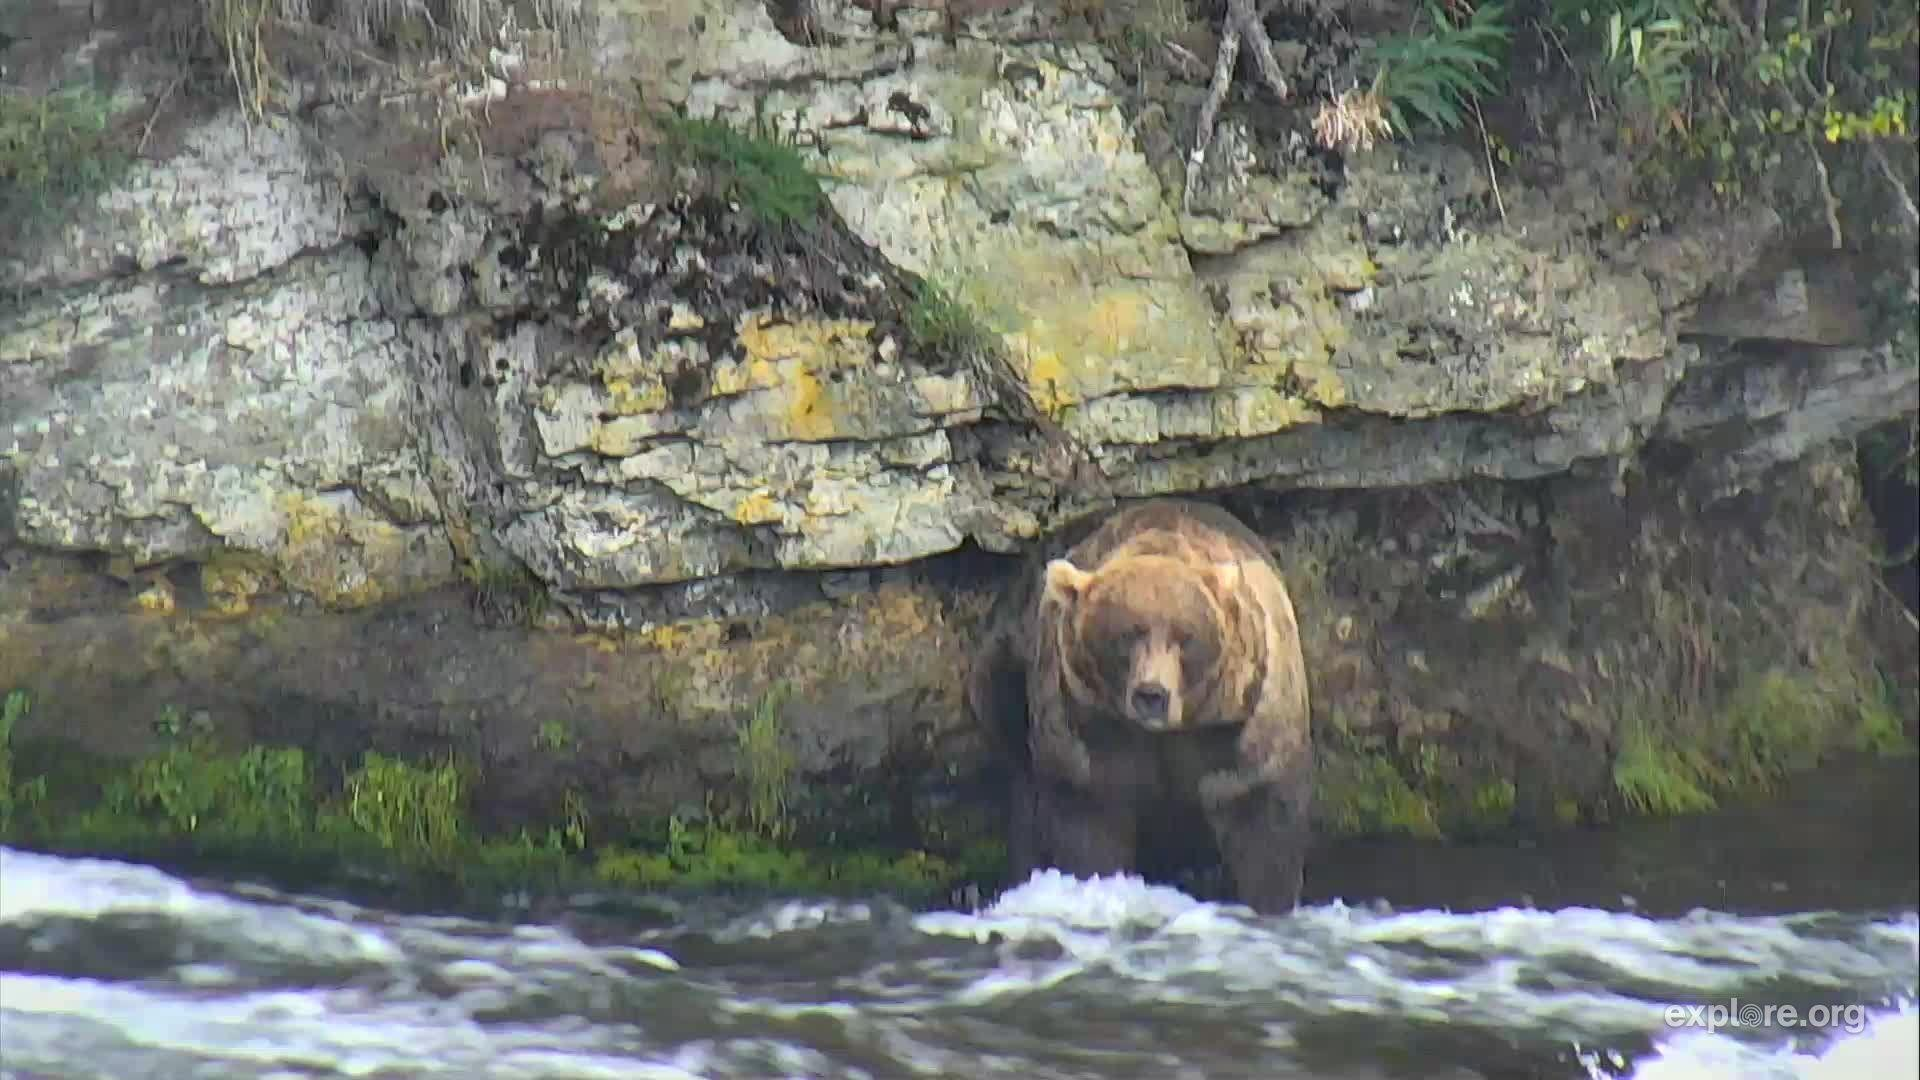 I'm watching on explore, streaming live from Katmai